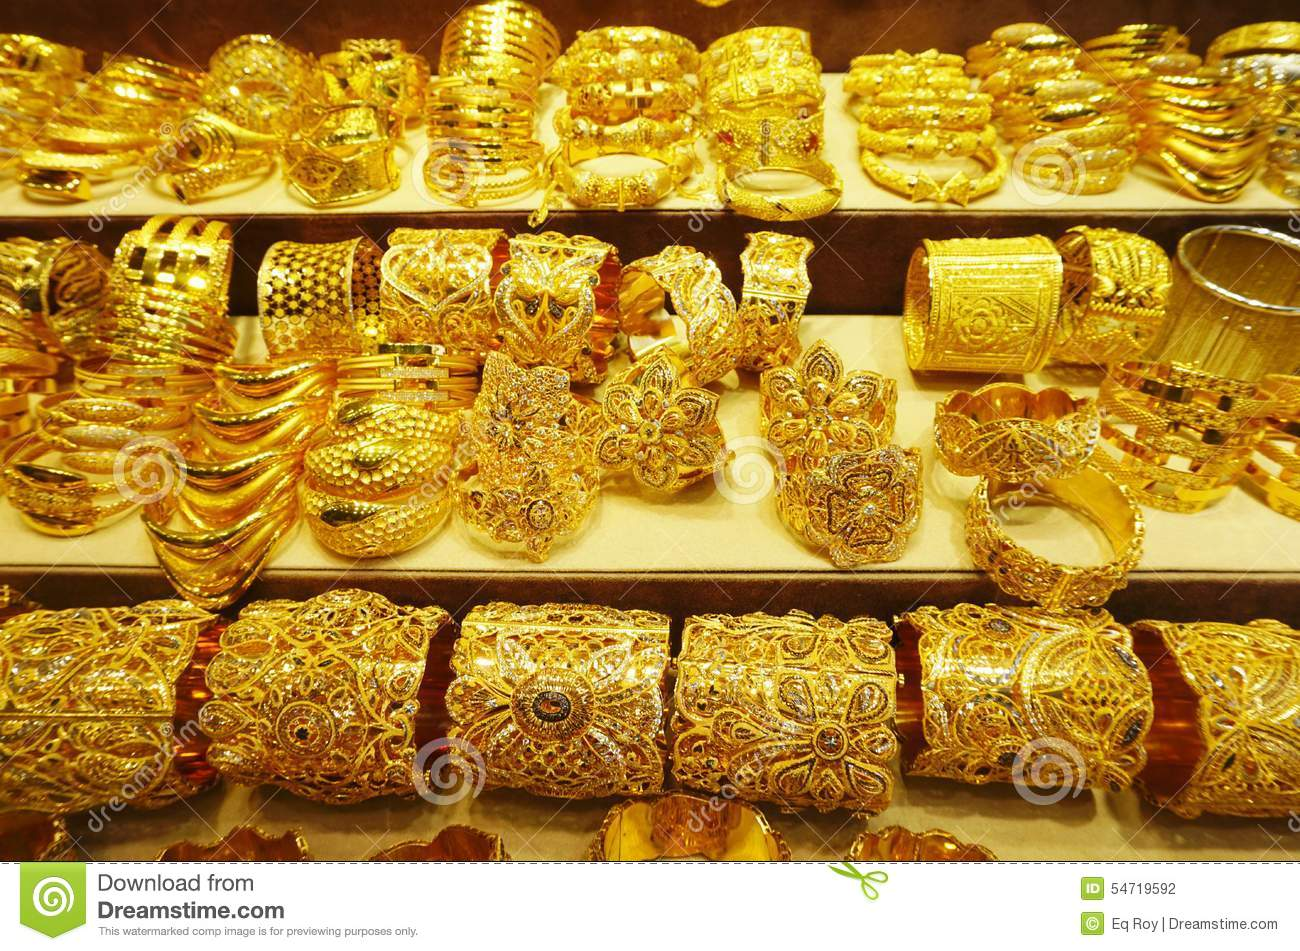 emirates royalty free gold jewellery stock picture united arab more souq photo at dubai